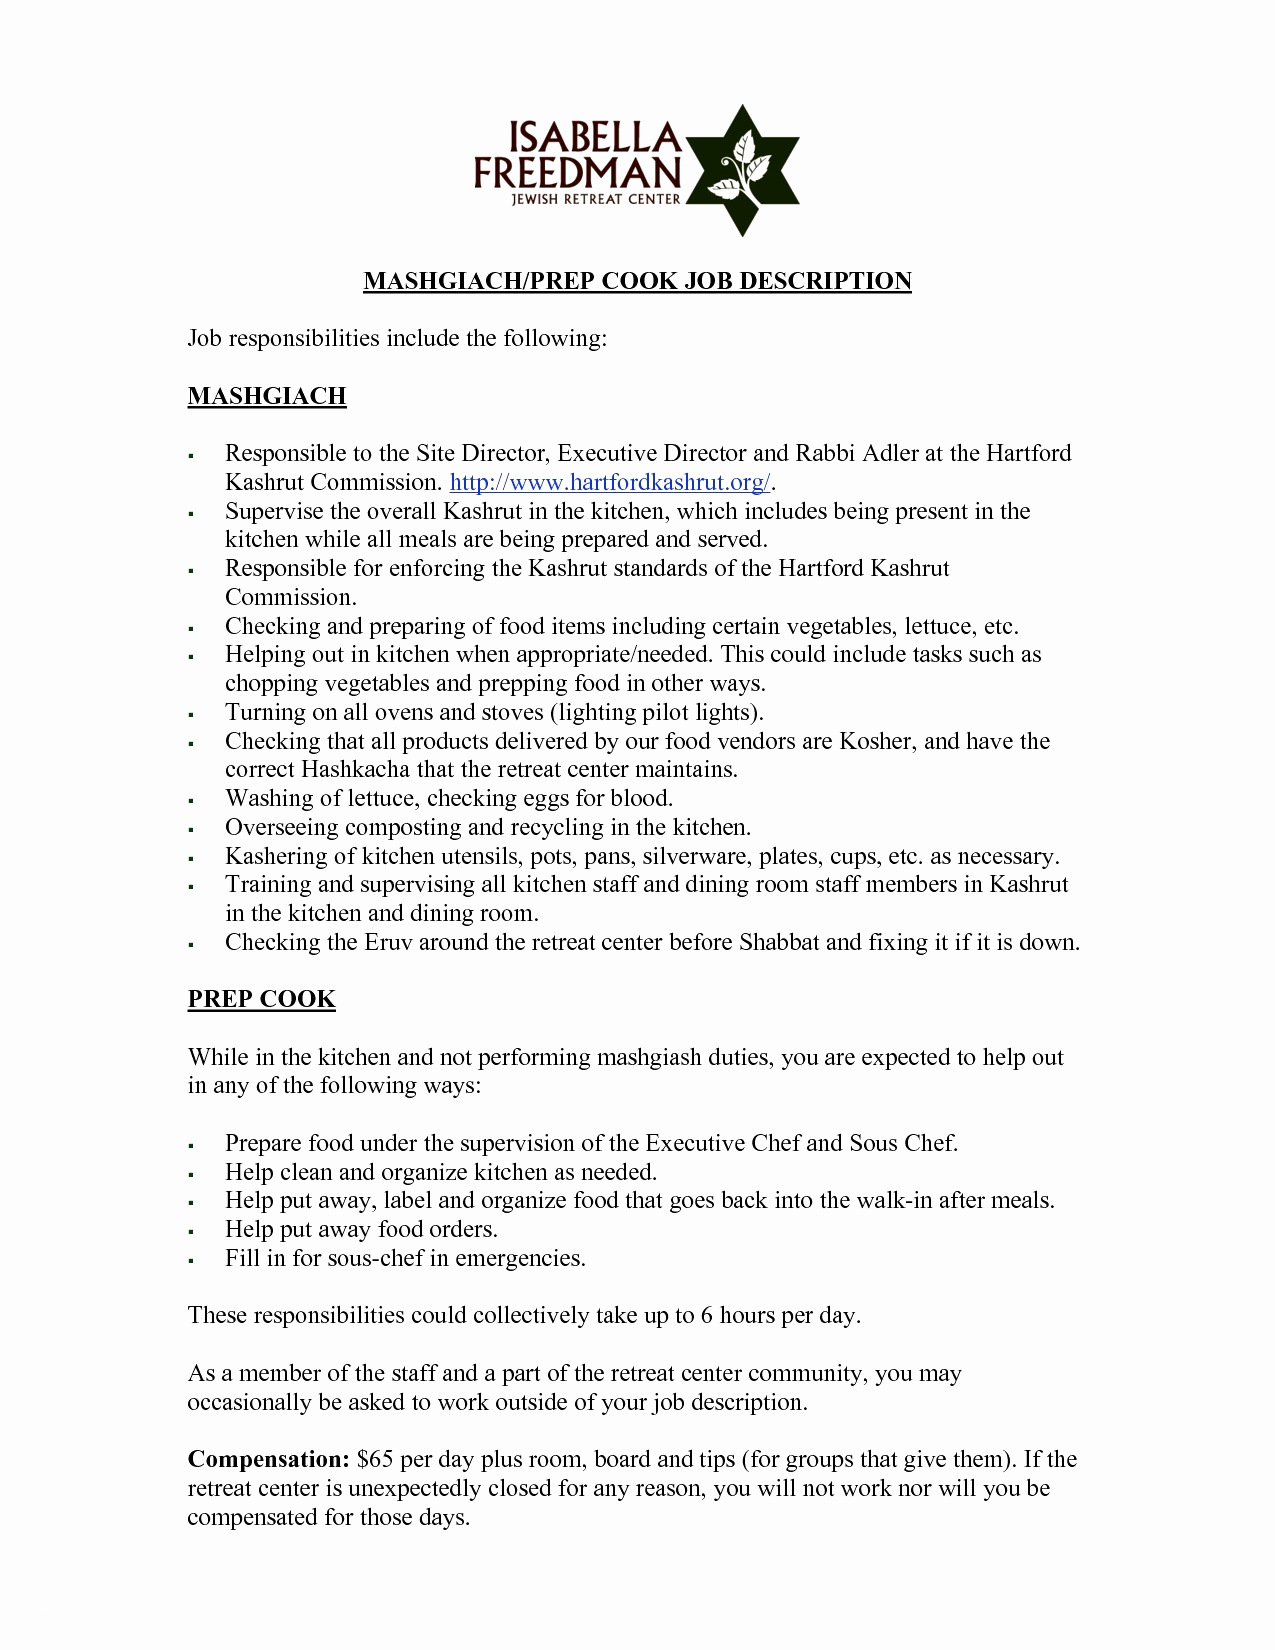 Engineering Cover Letter Template - Resume Templates Engineering Fresh Resume and Cover Letter Template